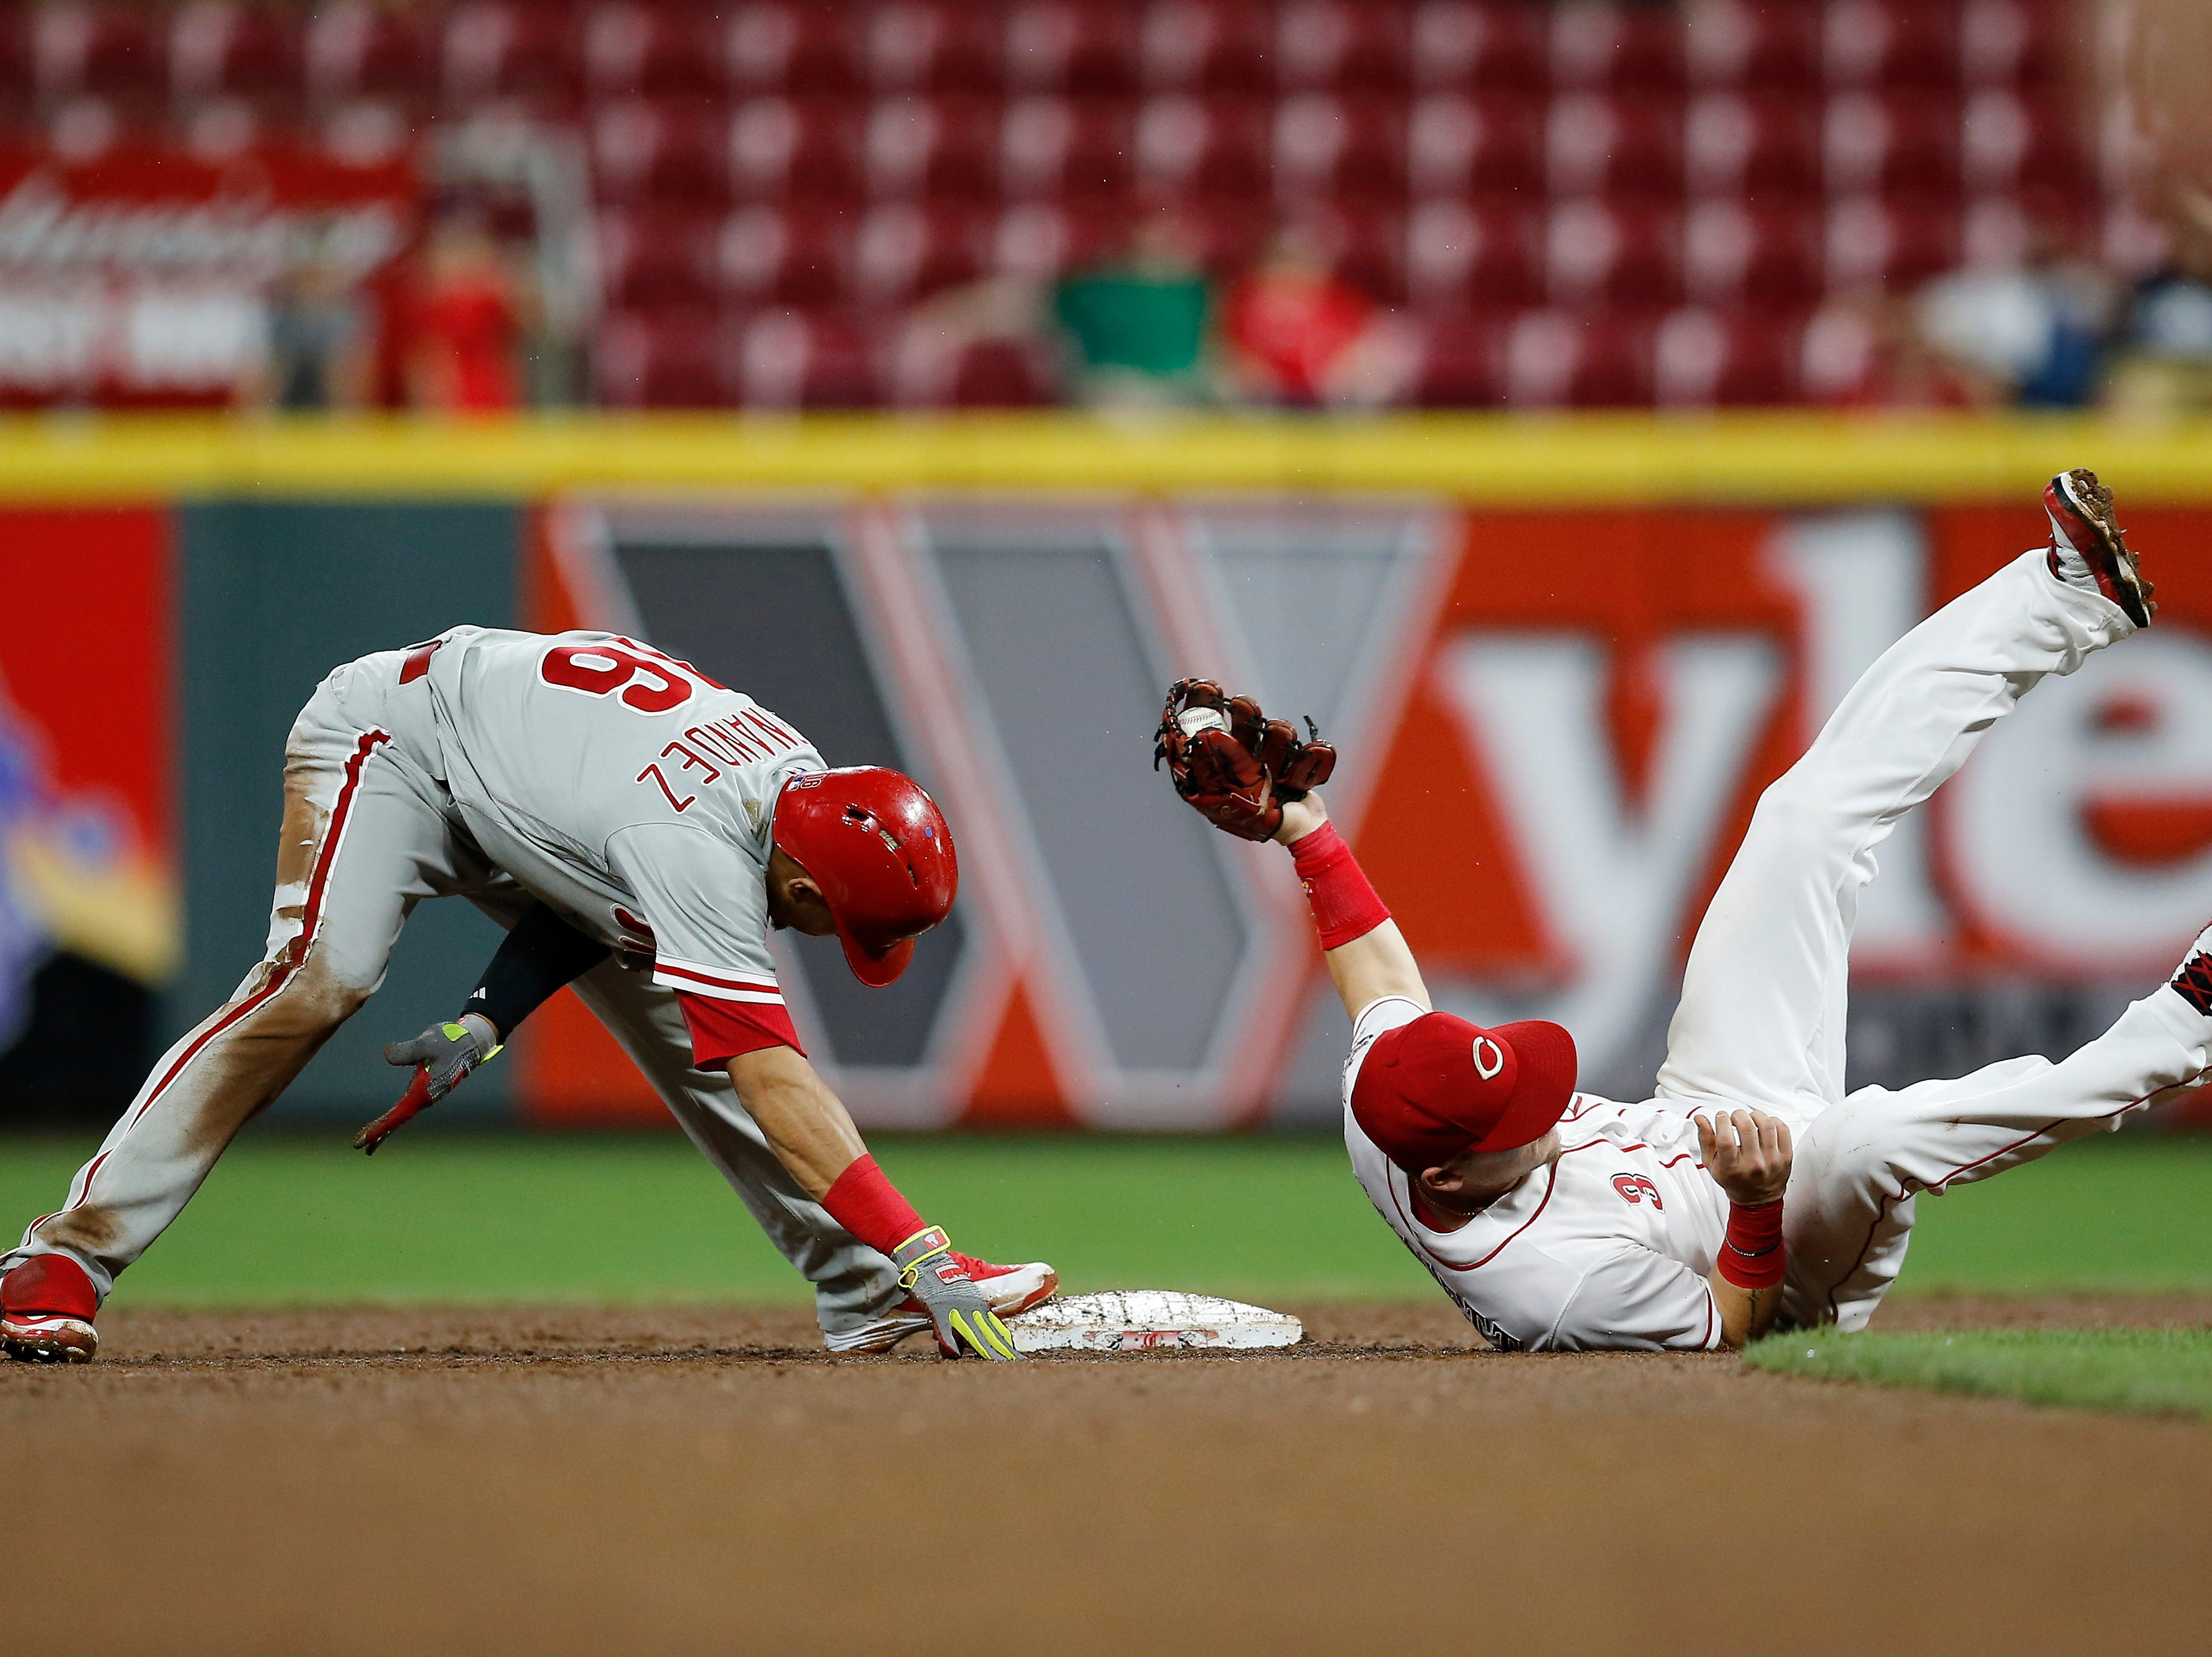 Cincinnati Reds second baseman Scooter Gennett (3) stretches to tag out Philadelphia Phillies second baseman Cesar Hernandez (16) at second base in the top of the eighth inning of the MLB National League game between the Cincinnati Reds and the Philadelphia Phillies at Great American Ball Park in downtown Cincinnati on Thursday, July 26, 2018. The Reds lost 9-4.